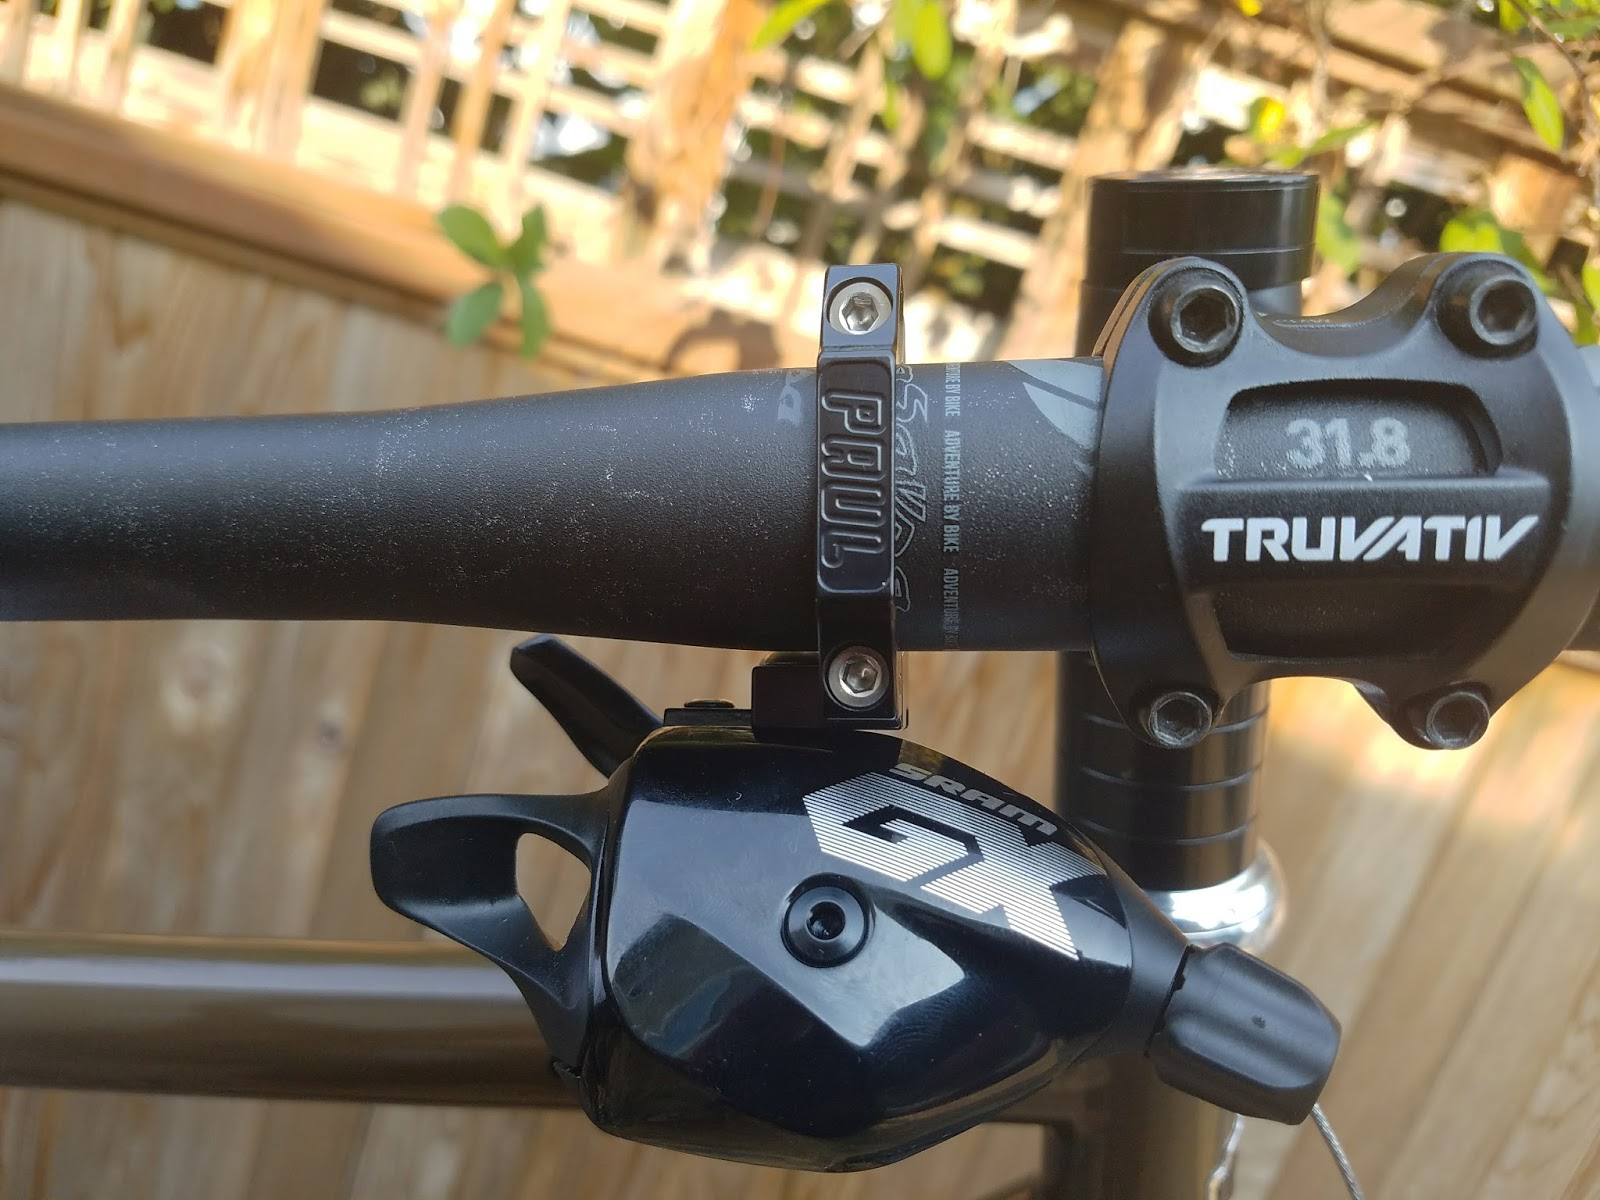 Pedal And Cast 2017 Surly Ogre 1x12 Bikepacking Build Adaptor Seatpost 272 The Sram Shifter Adapter From Paul Components Is Purpose Built To Solve This Very Problem